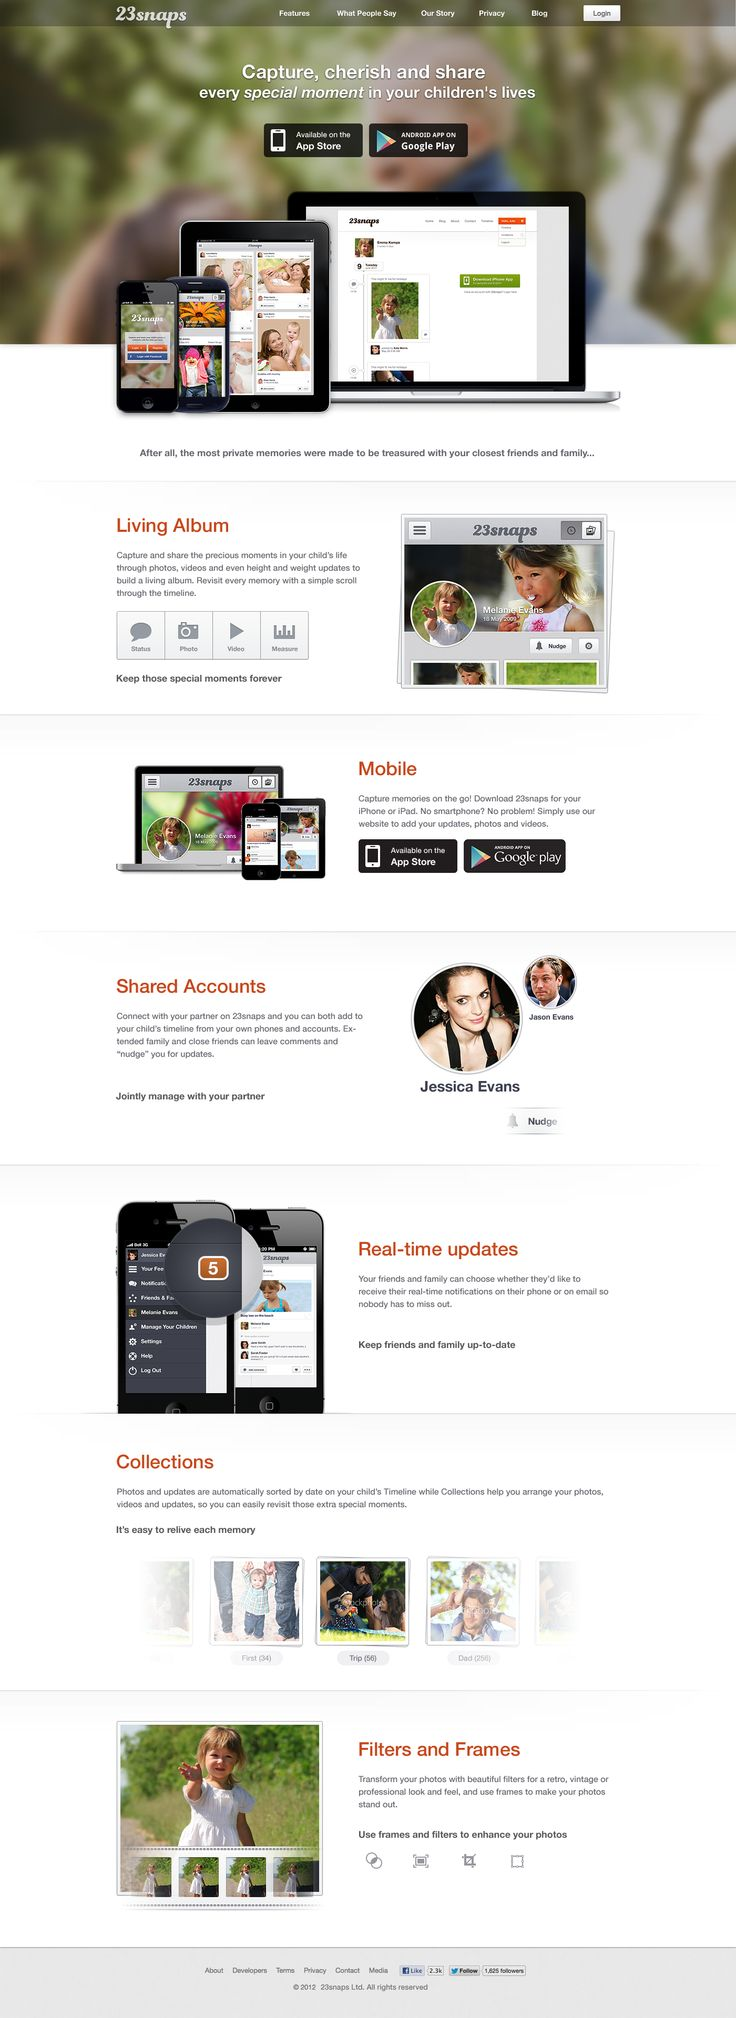 23snaps product website 2.0